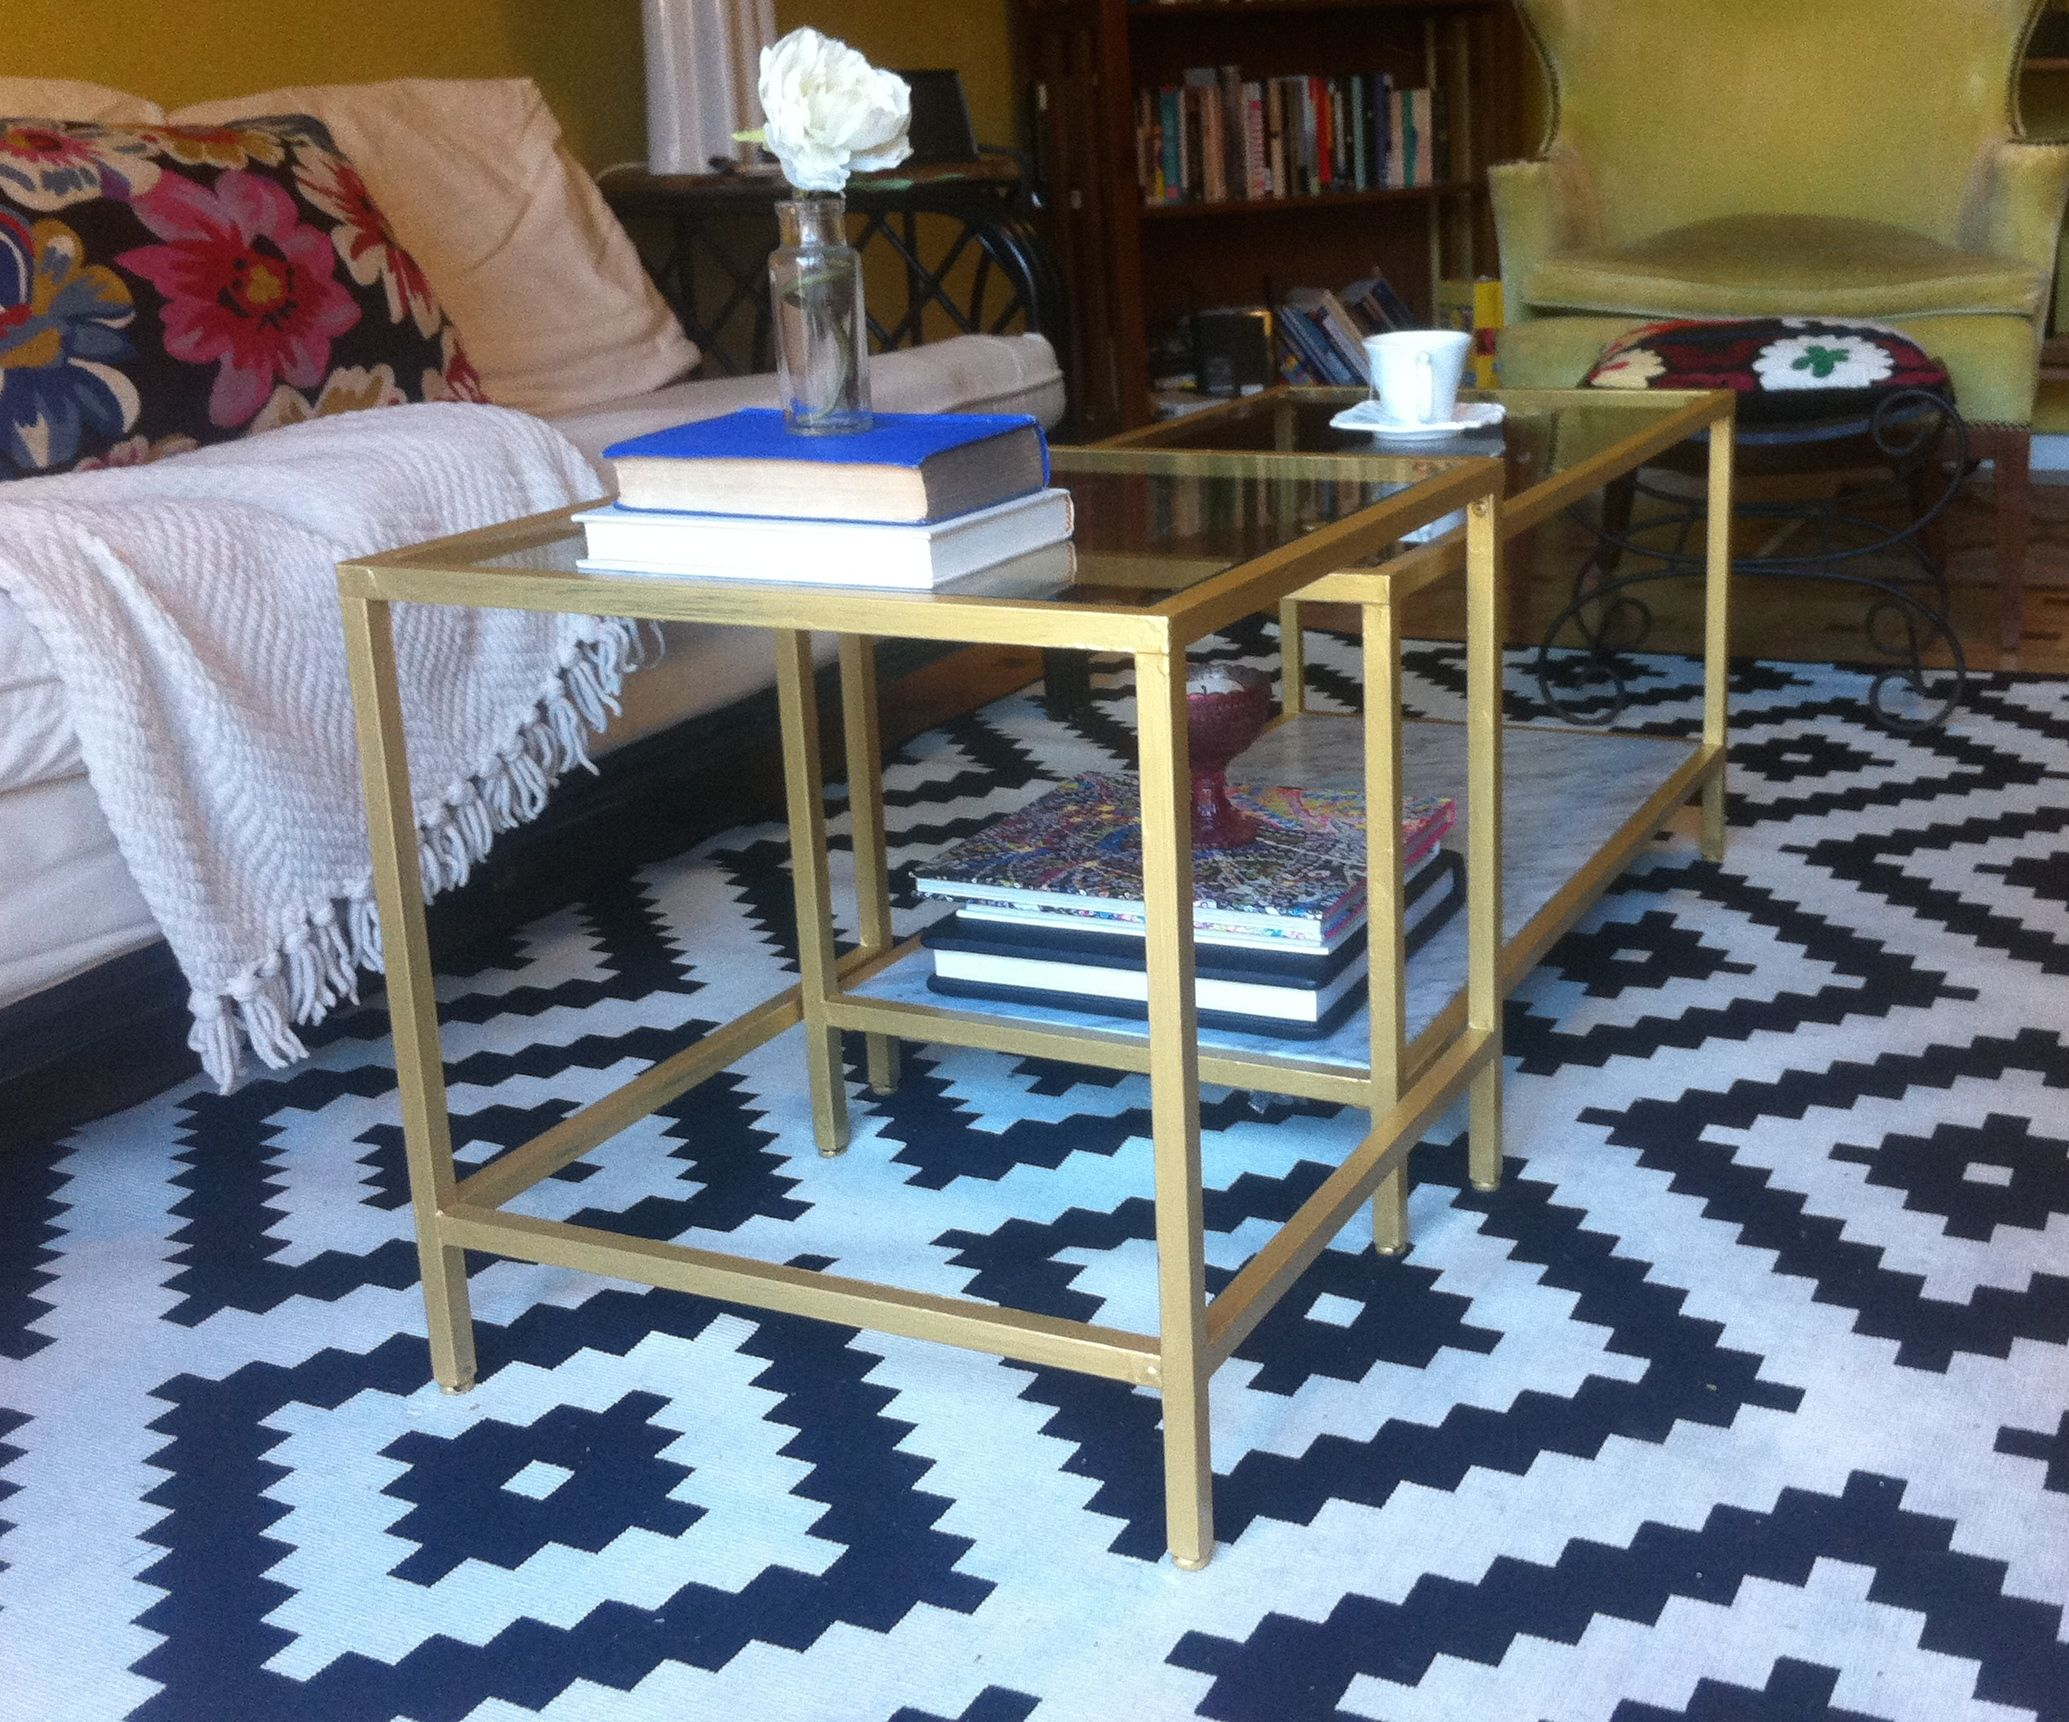 A Cheap Ikea Coffee Table Turned Glam – Em in Jerusalem